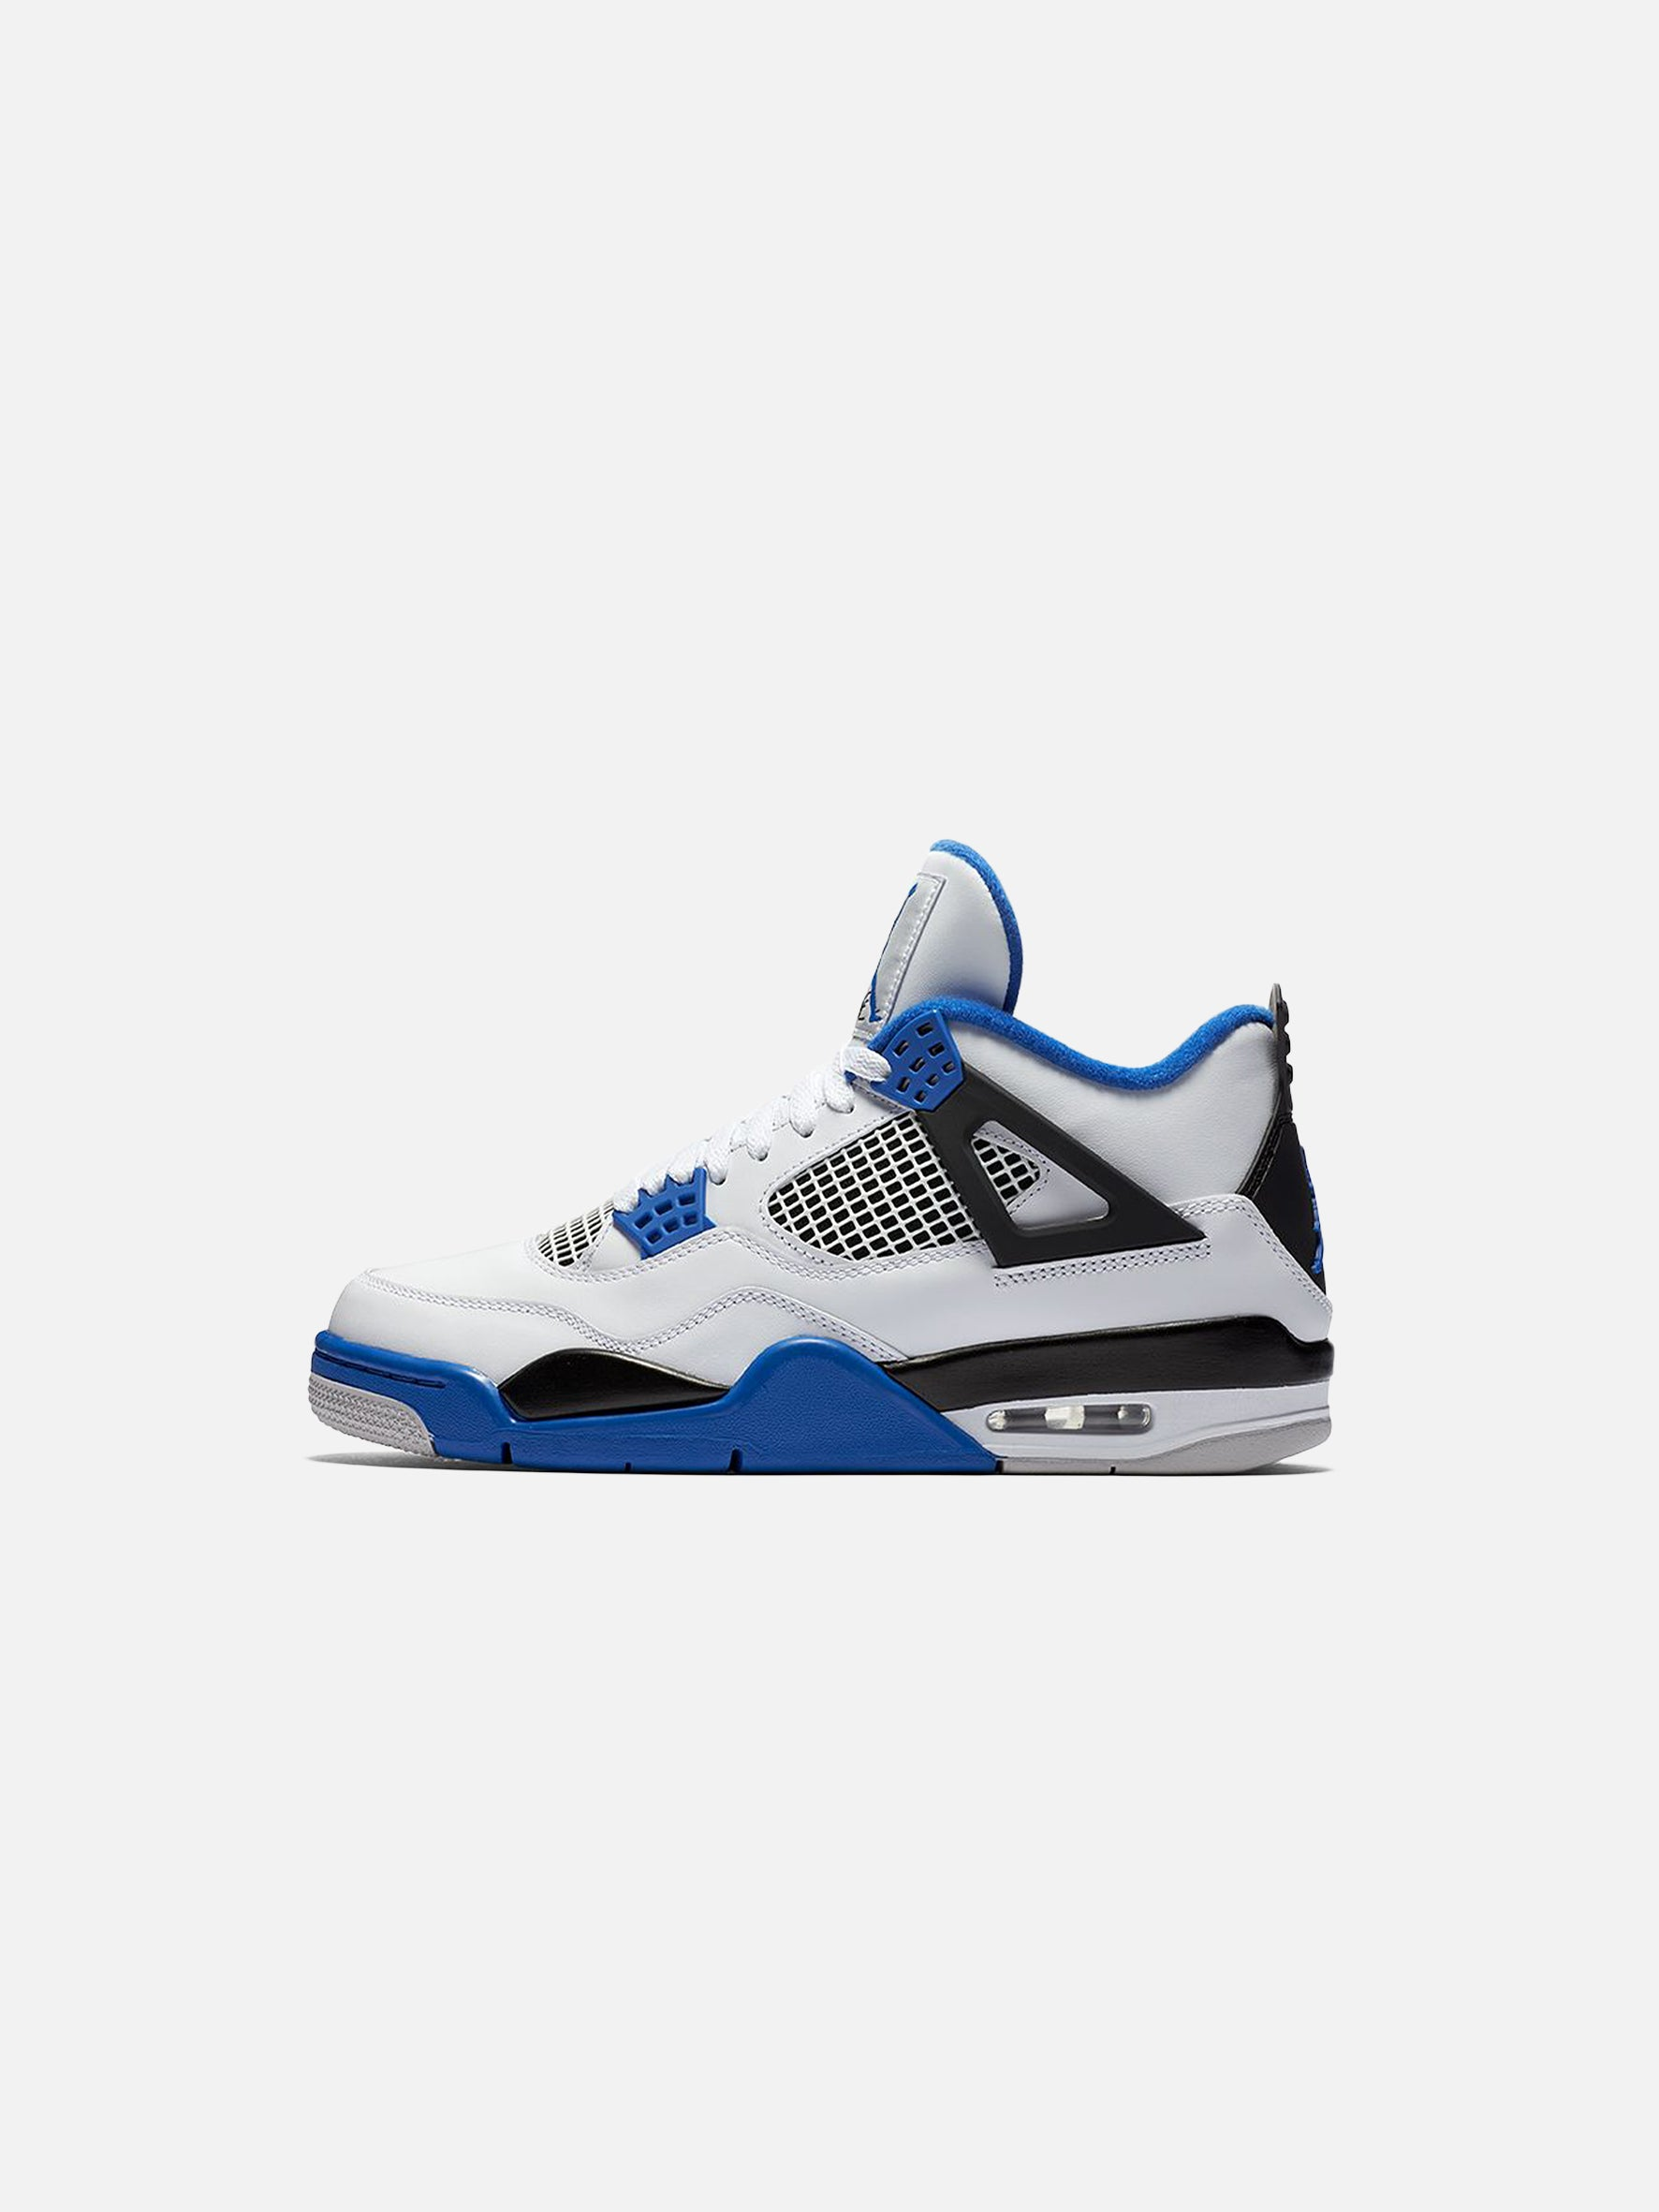 Nike Air Jordan IV Motorsport